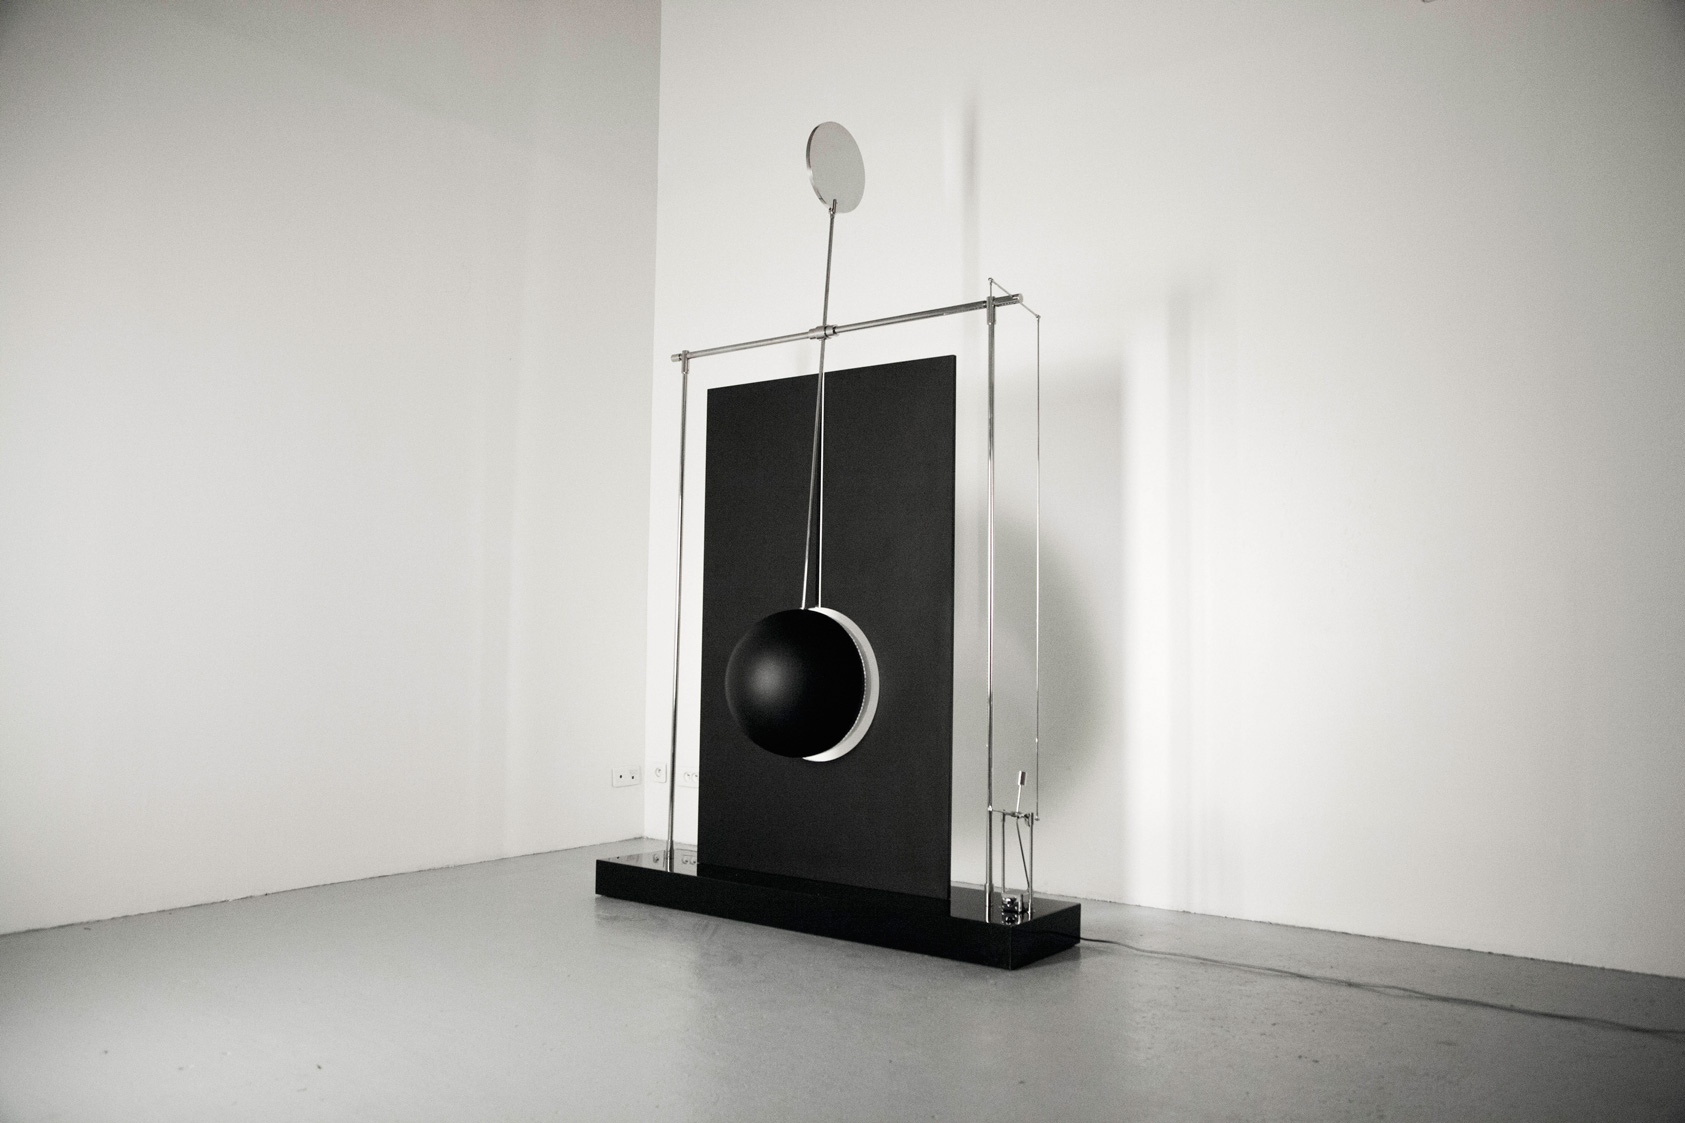 """In """"Spatial Variations"""", a slowly undulating metal ball ticks along its defined course, while throwing light and shadows on the surrounding space, almost as if the light is alive and breathing."""